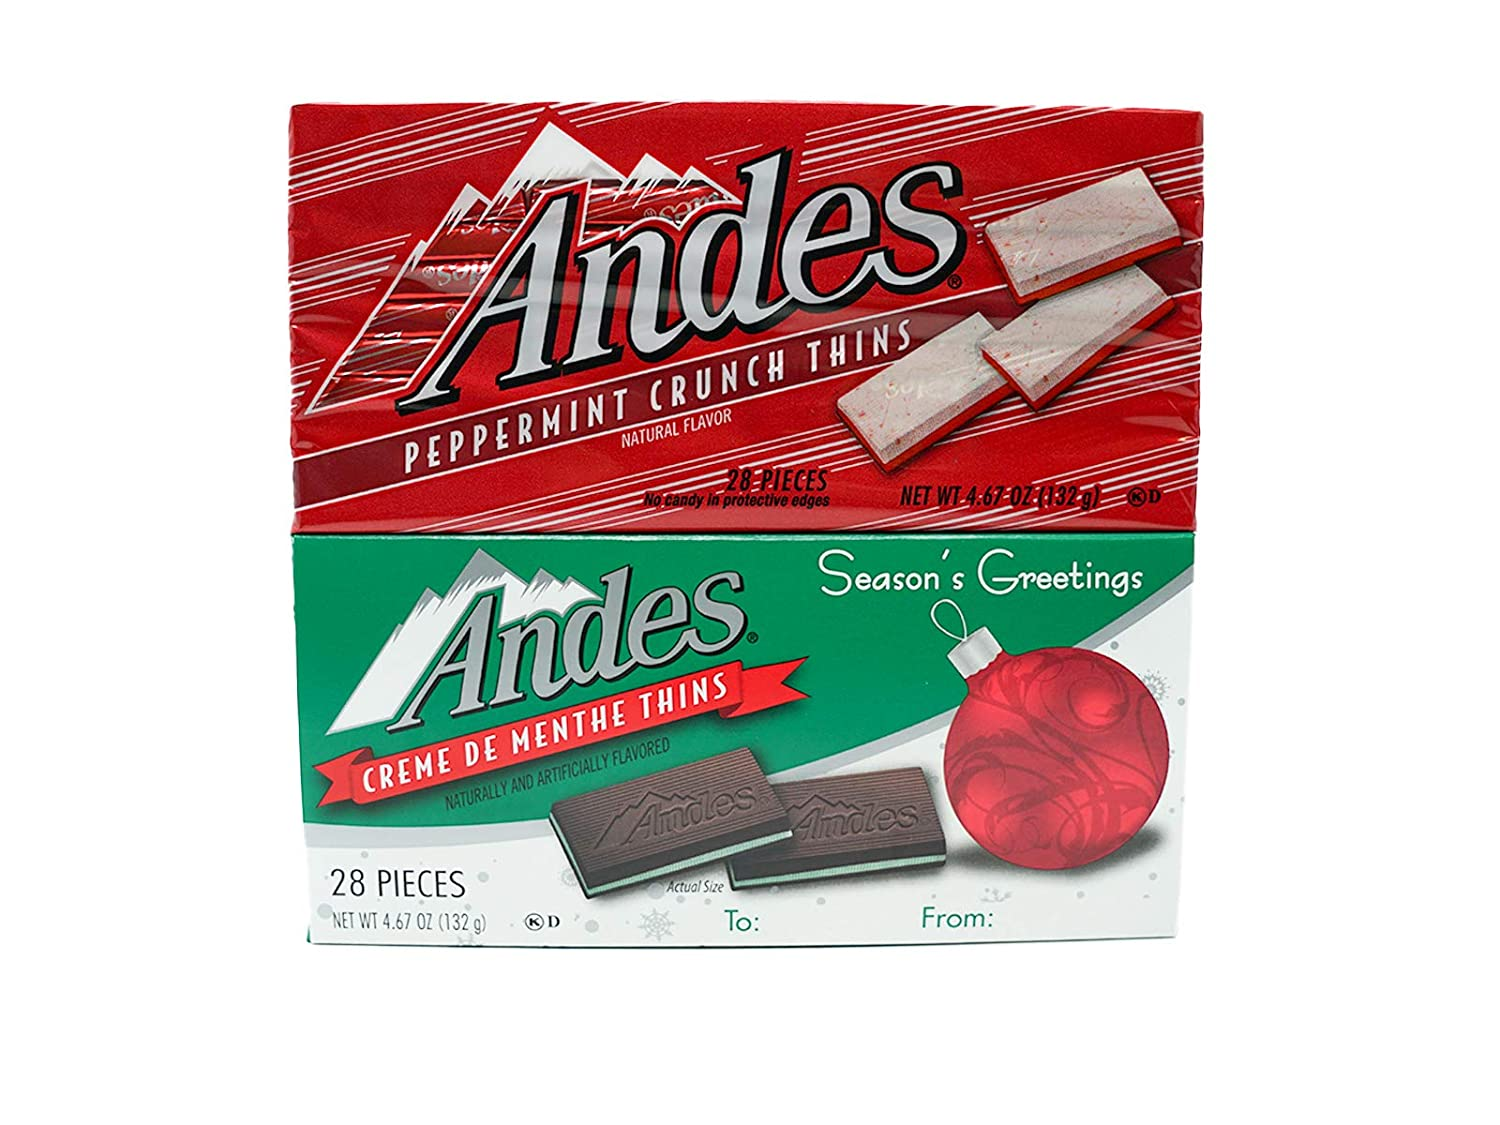 Andes Mint and Peppermint Crunch Thins Chocolate Pack, Holiday Candy Treat Boxes, Set of 2, 28 Pieces in Each